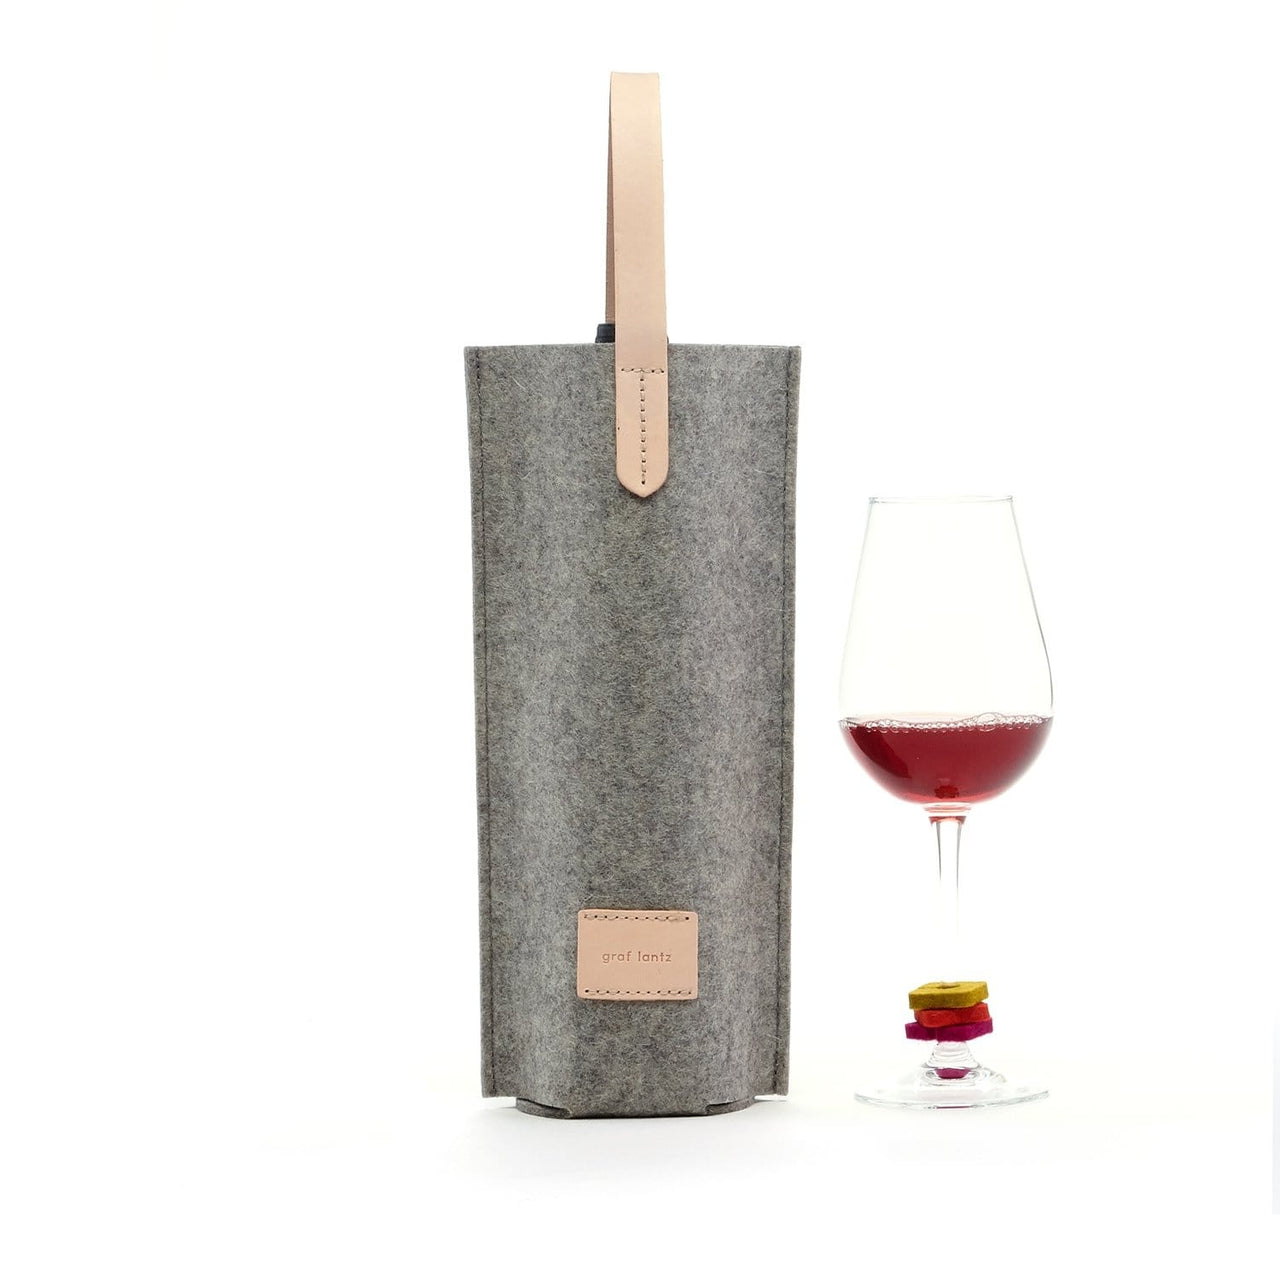 Graf Lantz Wine & Food Carriers Granite Wine Lover's Set Single Carrier